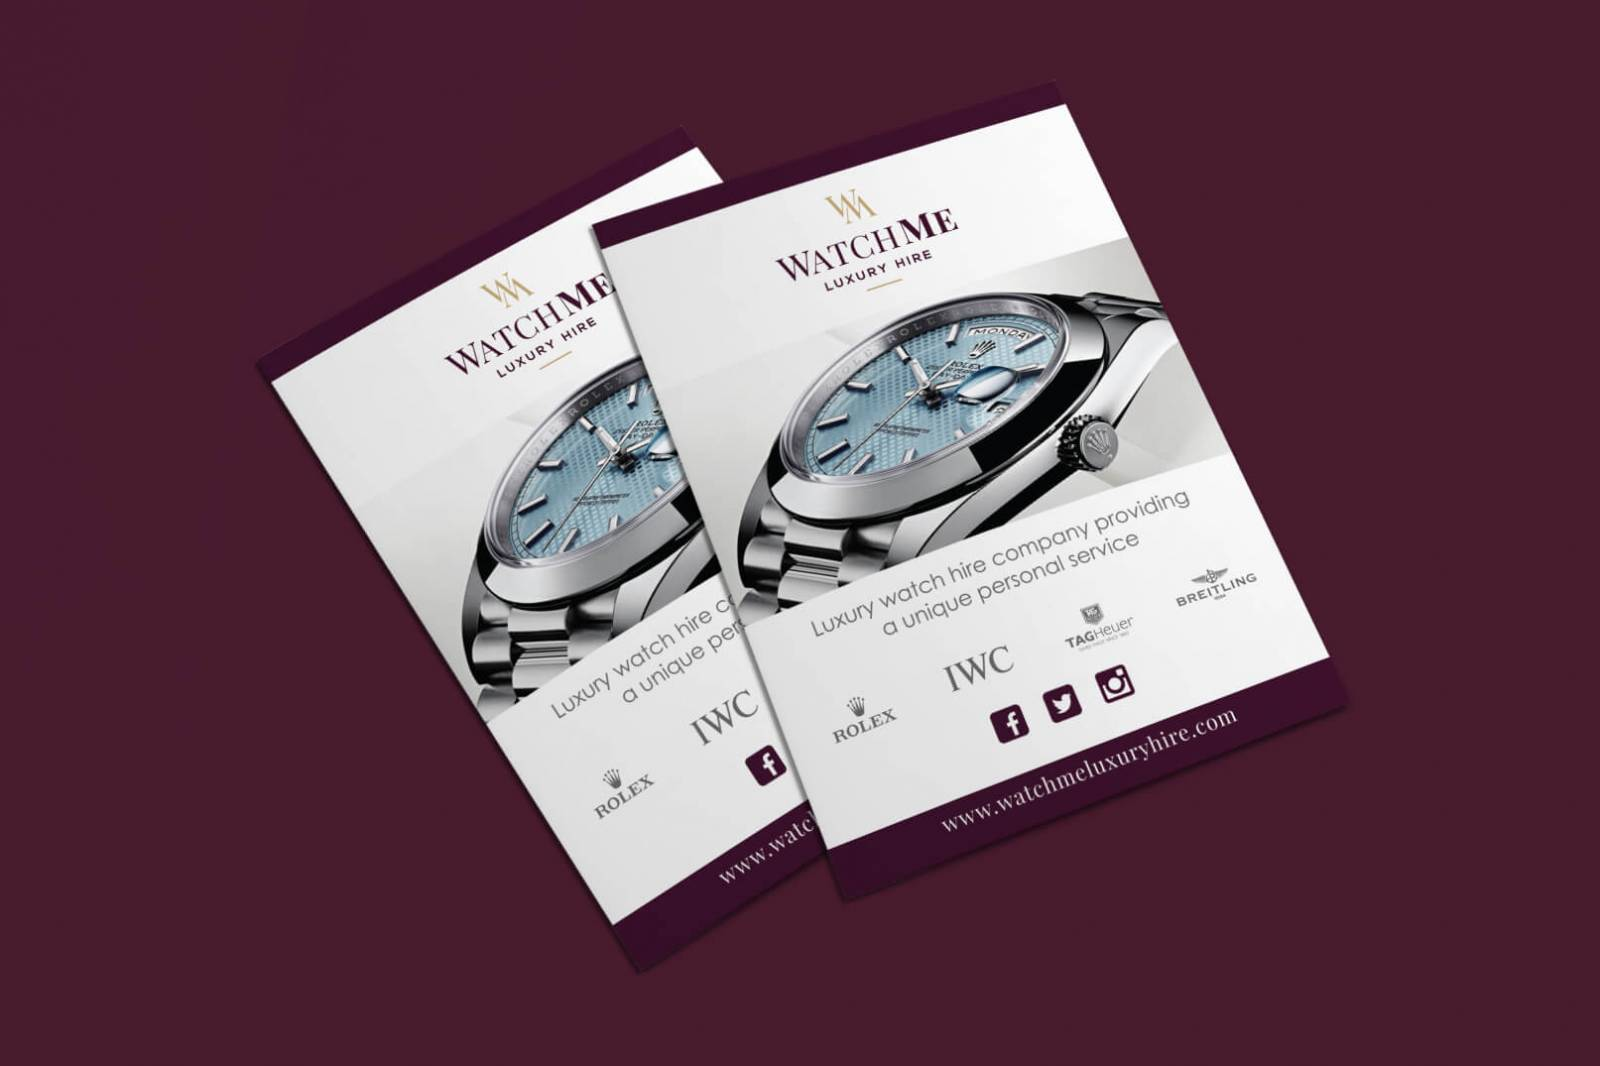 Watchme-flyer-design-agency-graphic-design-canterbury.jpg